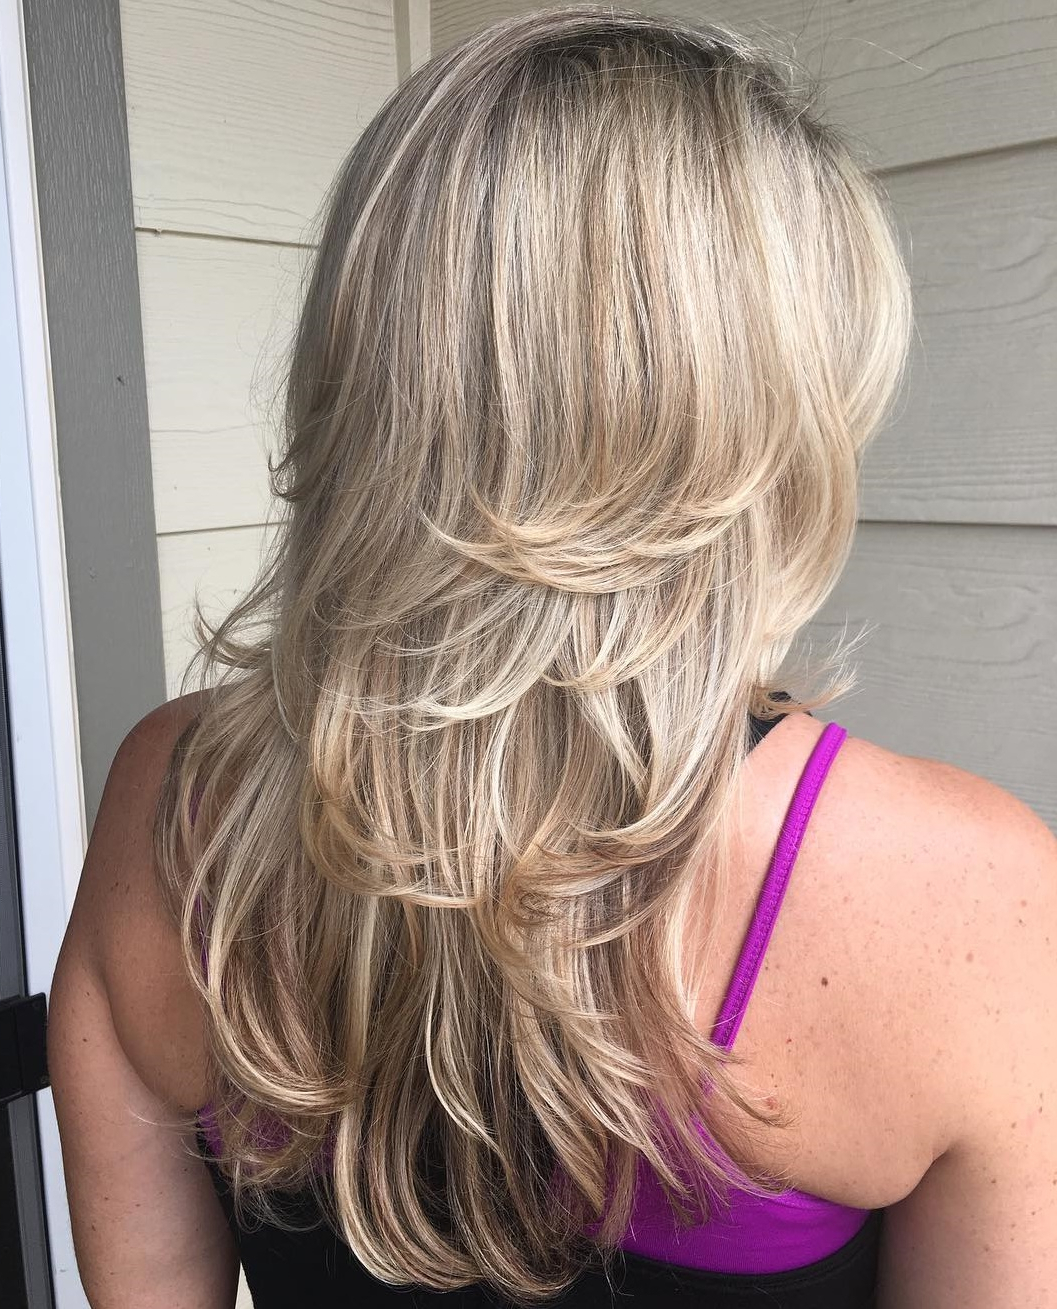 Newest Blonde Lob Hairstyles With Disconnected Jagged Layers Pertaining To How To Nail Layered Hair In 2019: Full Guide To Lengths And (View 16 of 20)